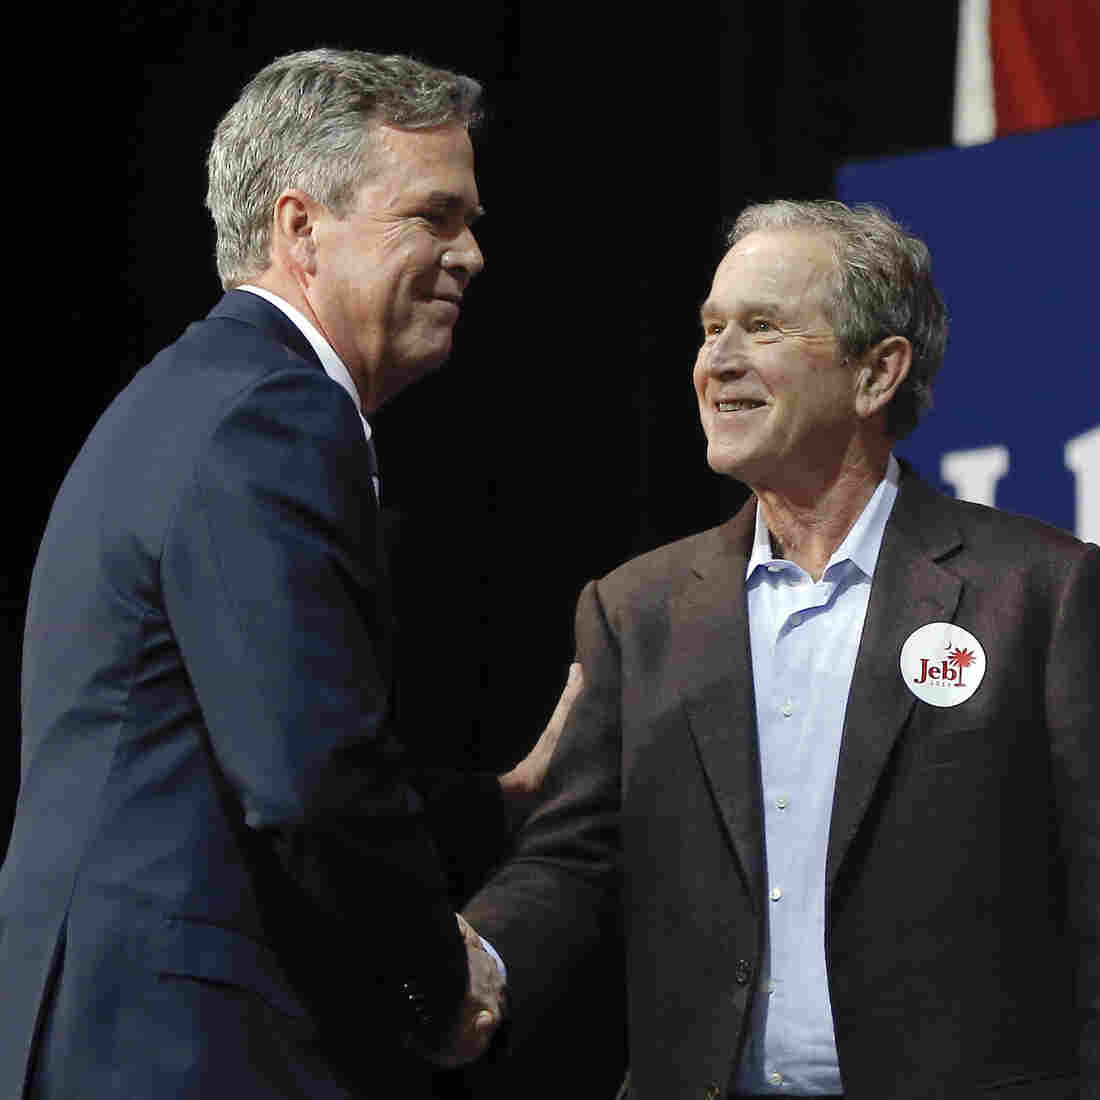 Former President George W. Bush appears at a rally during the final week of his brother Jeb Bush's 2016 presidential campaign, in North Charleston, S.C.